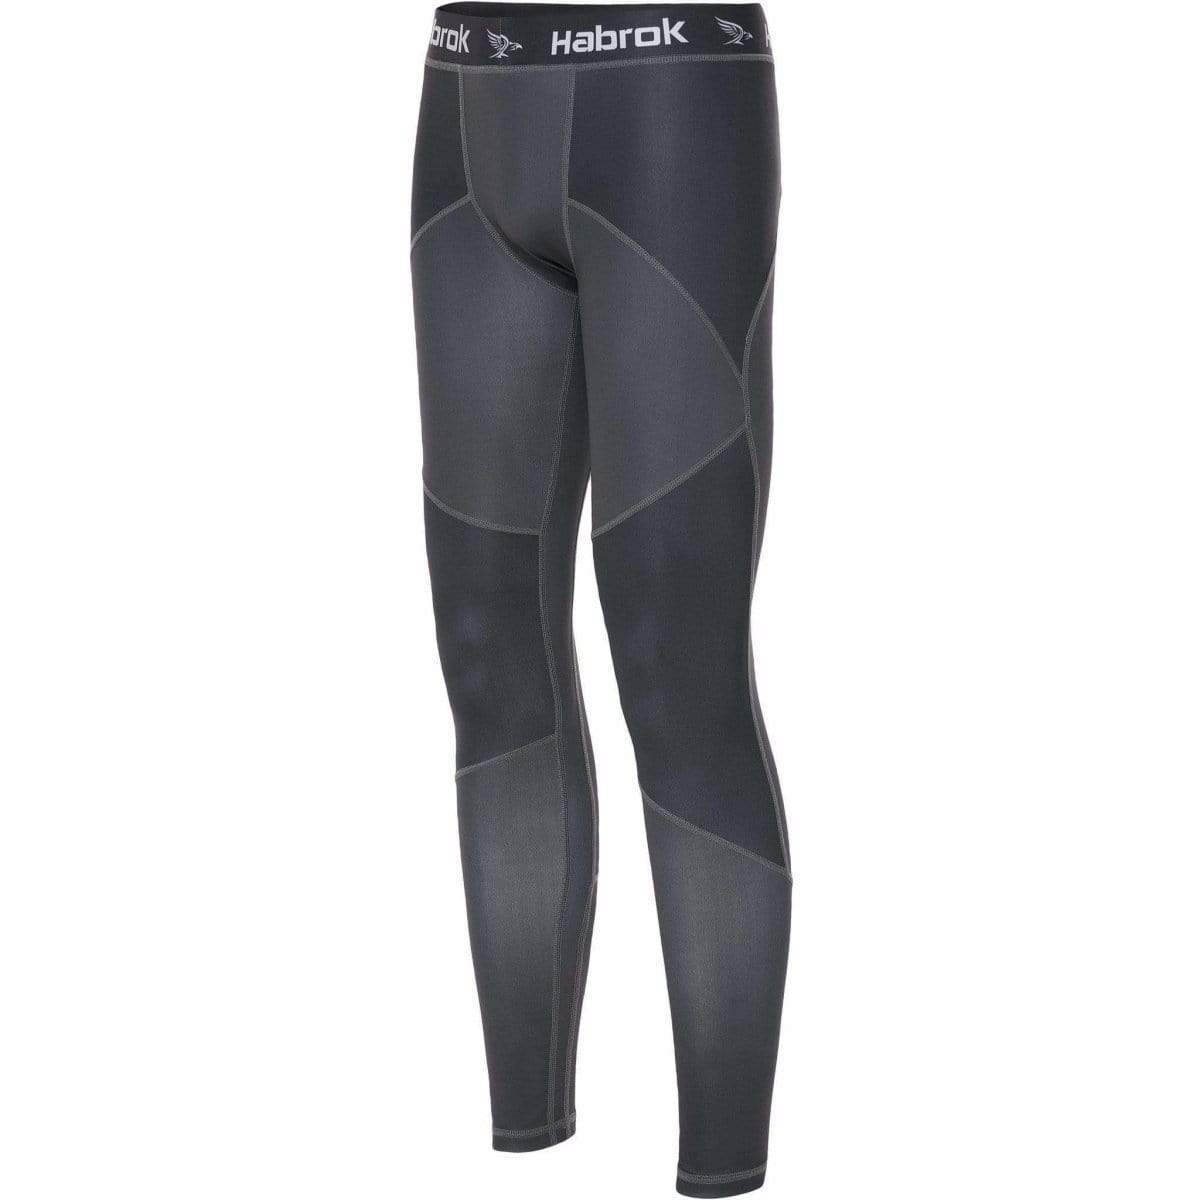 Habrok Spats S / GREY Pugnator | Compression Pants | Men